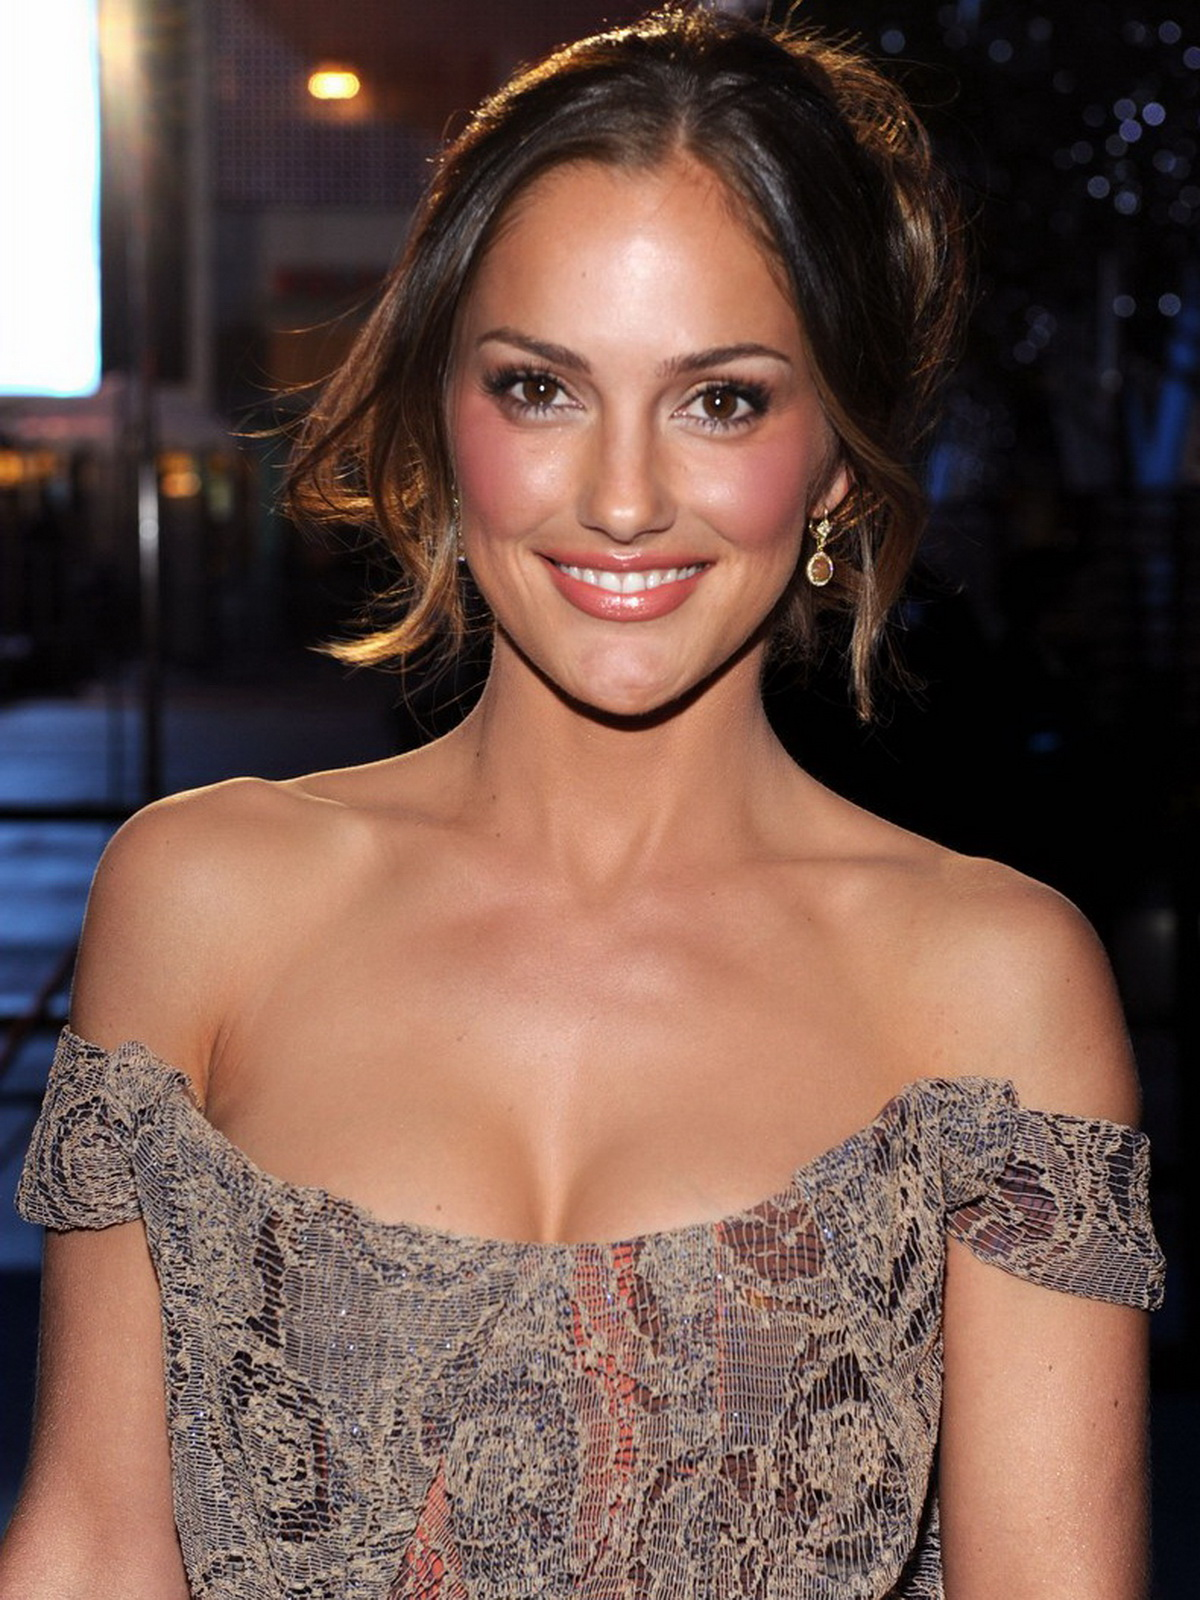 Minka Kelly sexy cleavage 2011 People's Choice Awards